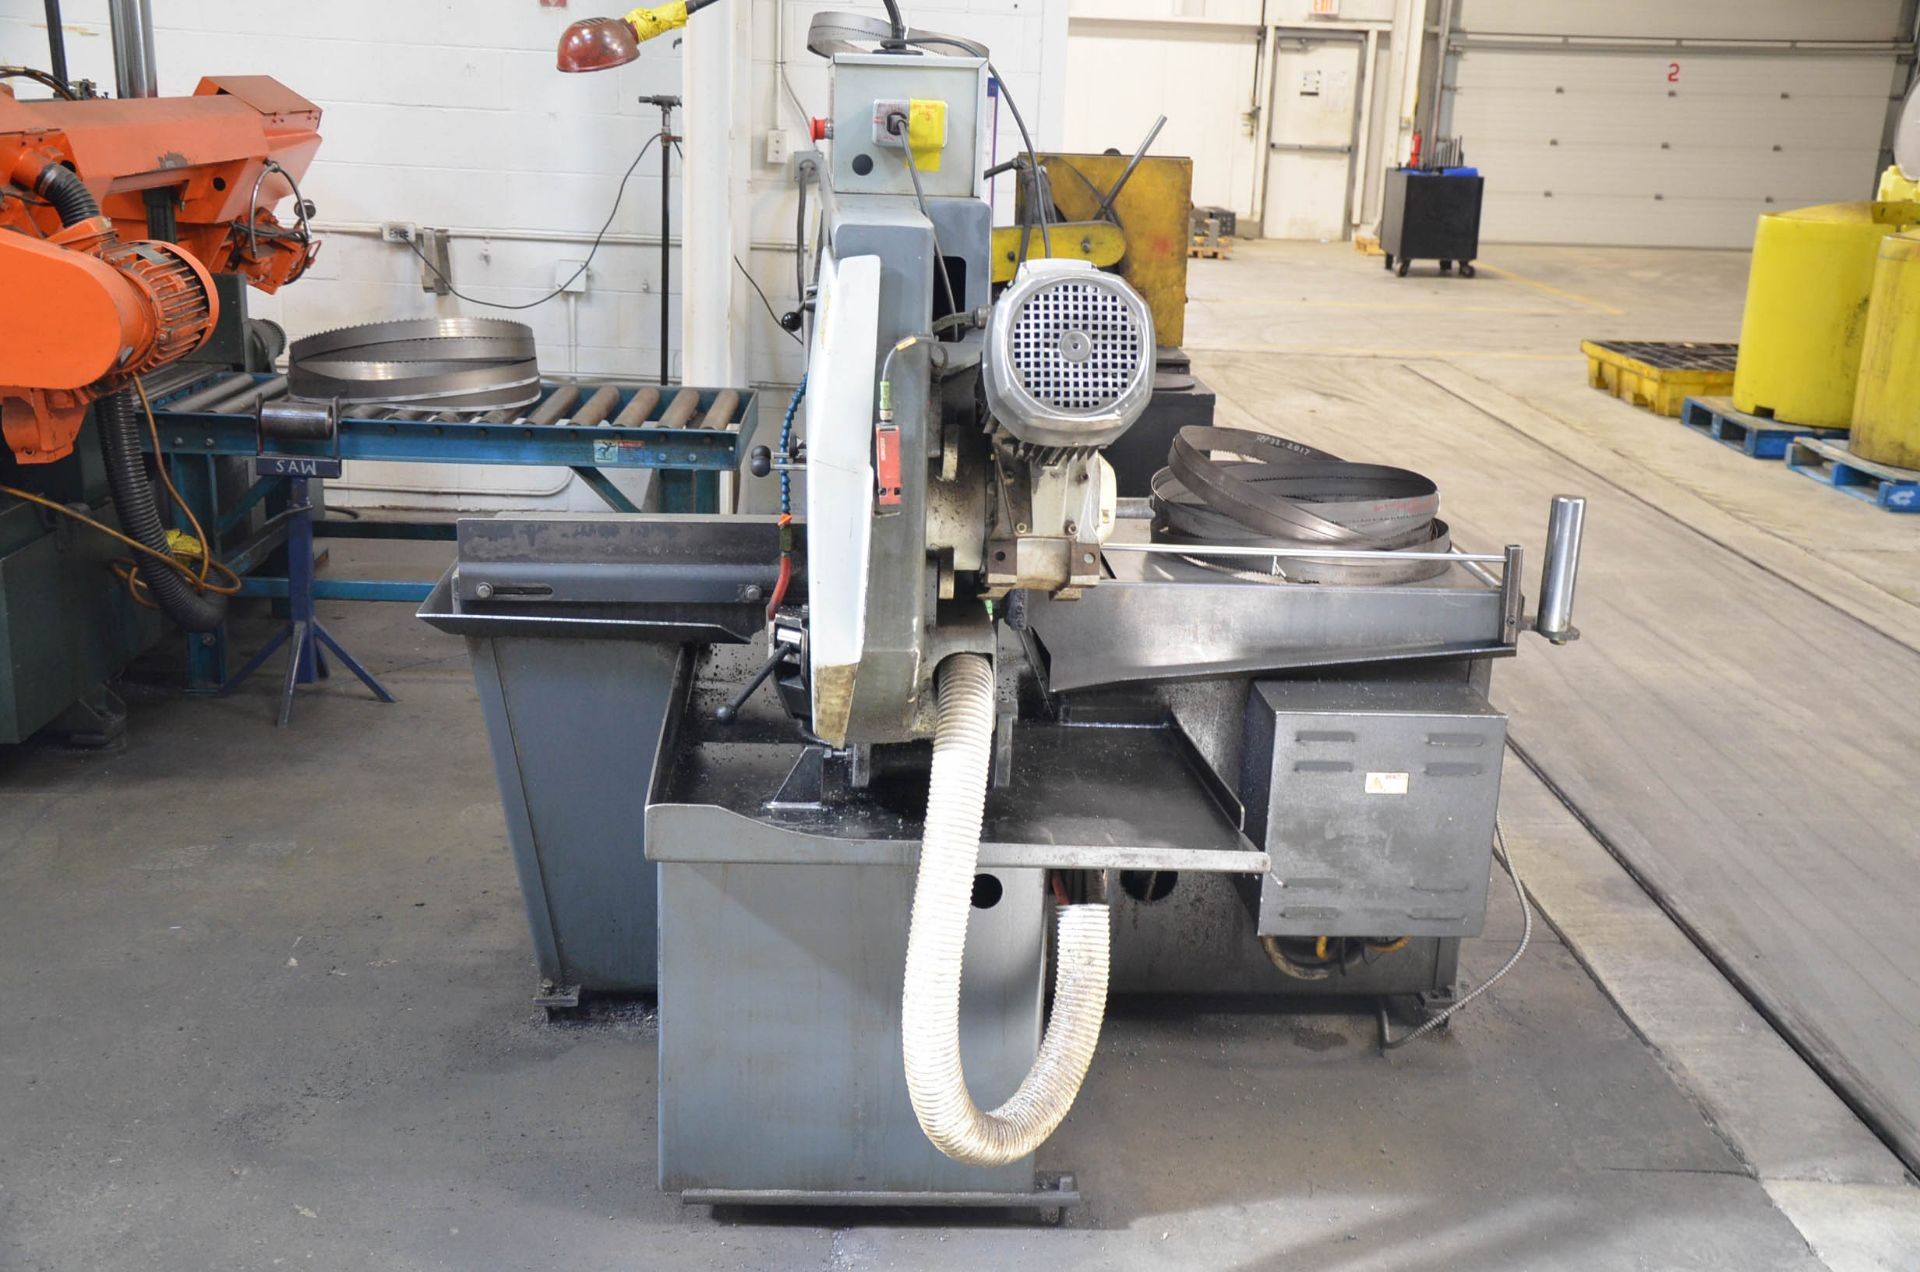 """HYD-MECH S-23 HORIZONTAL BAND SAW WITH 20"""" CAPACITY, HYDRAULIC VISE, COOLANT, CHIP AUGER, 600V/3PH/ - Image 3 of 8"""